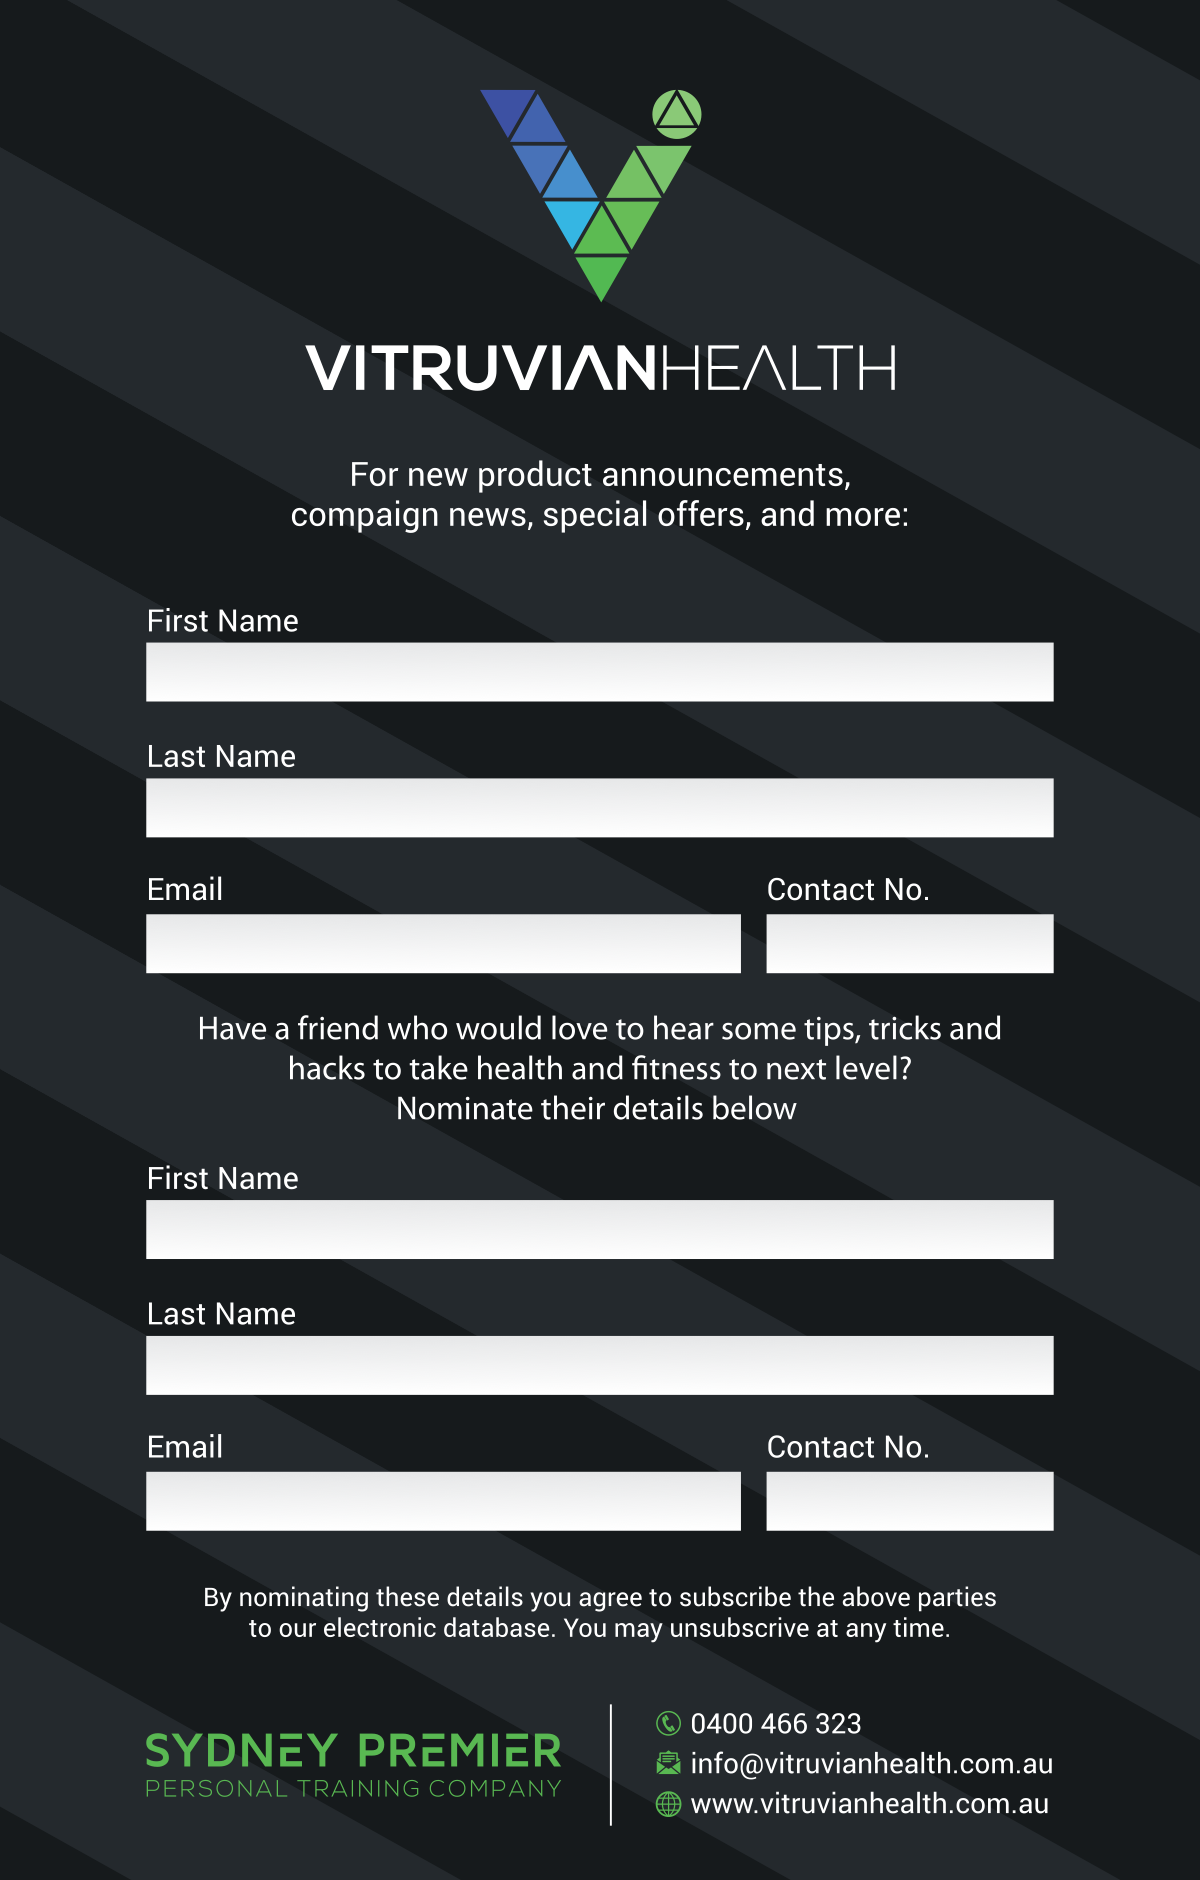 Vitruvian Health business promo kit project  (leaflet data collector)